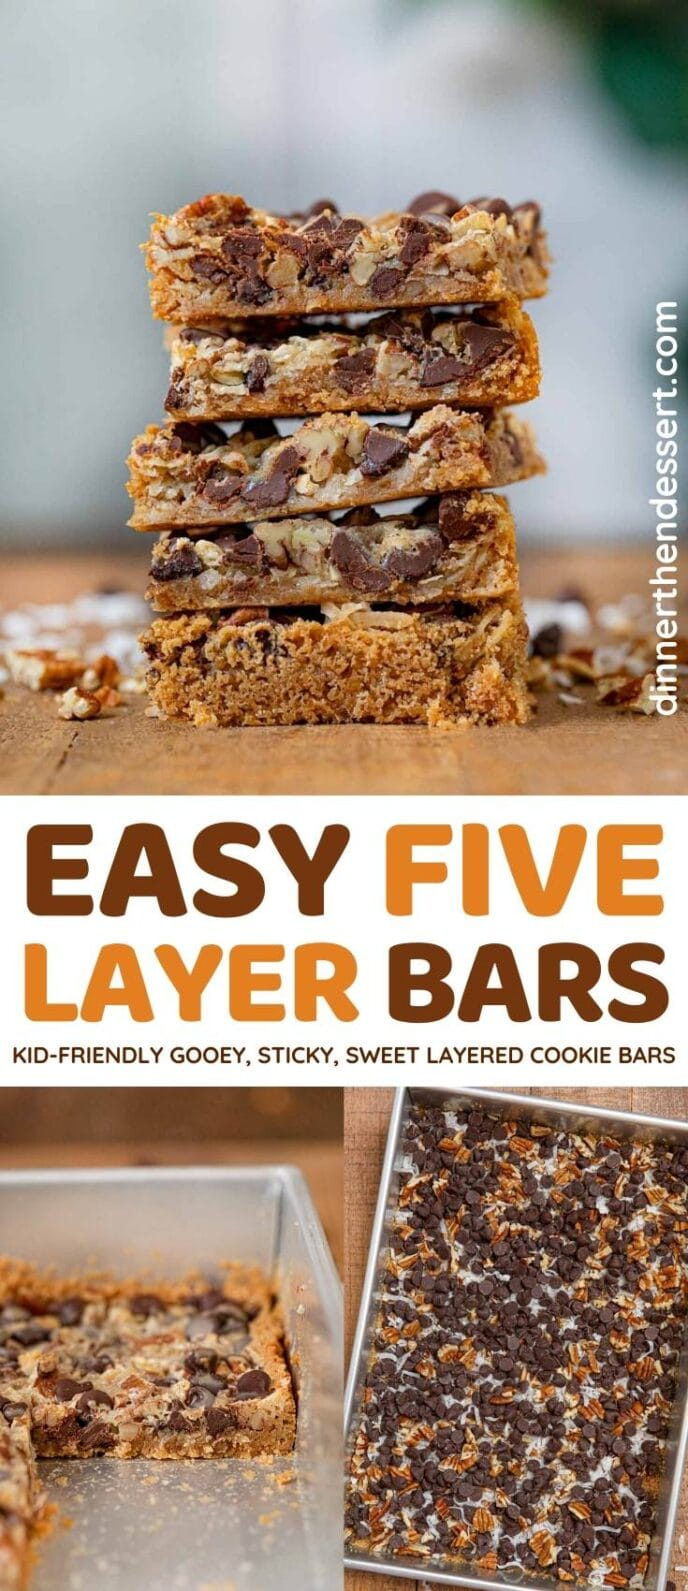 Easy Five Layer Bars collage